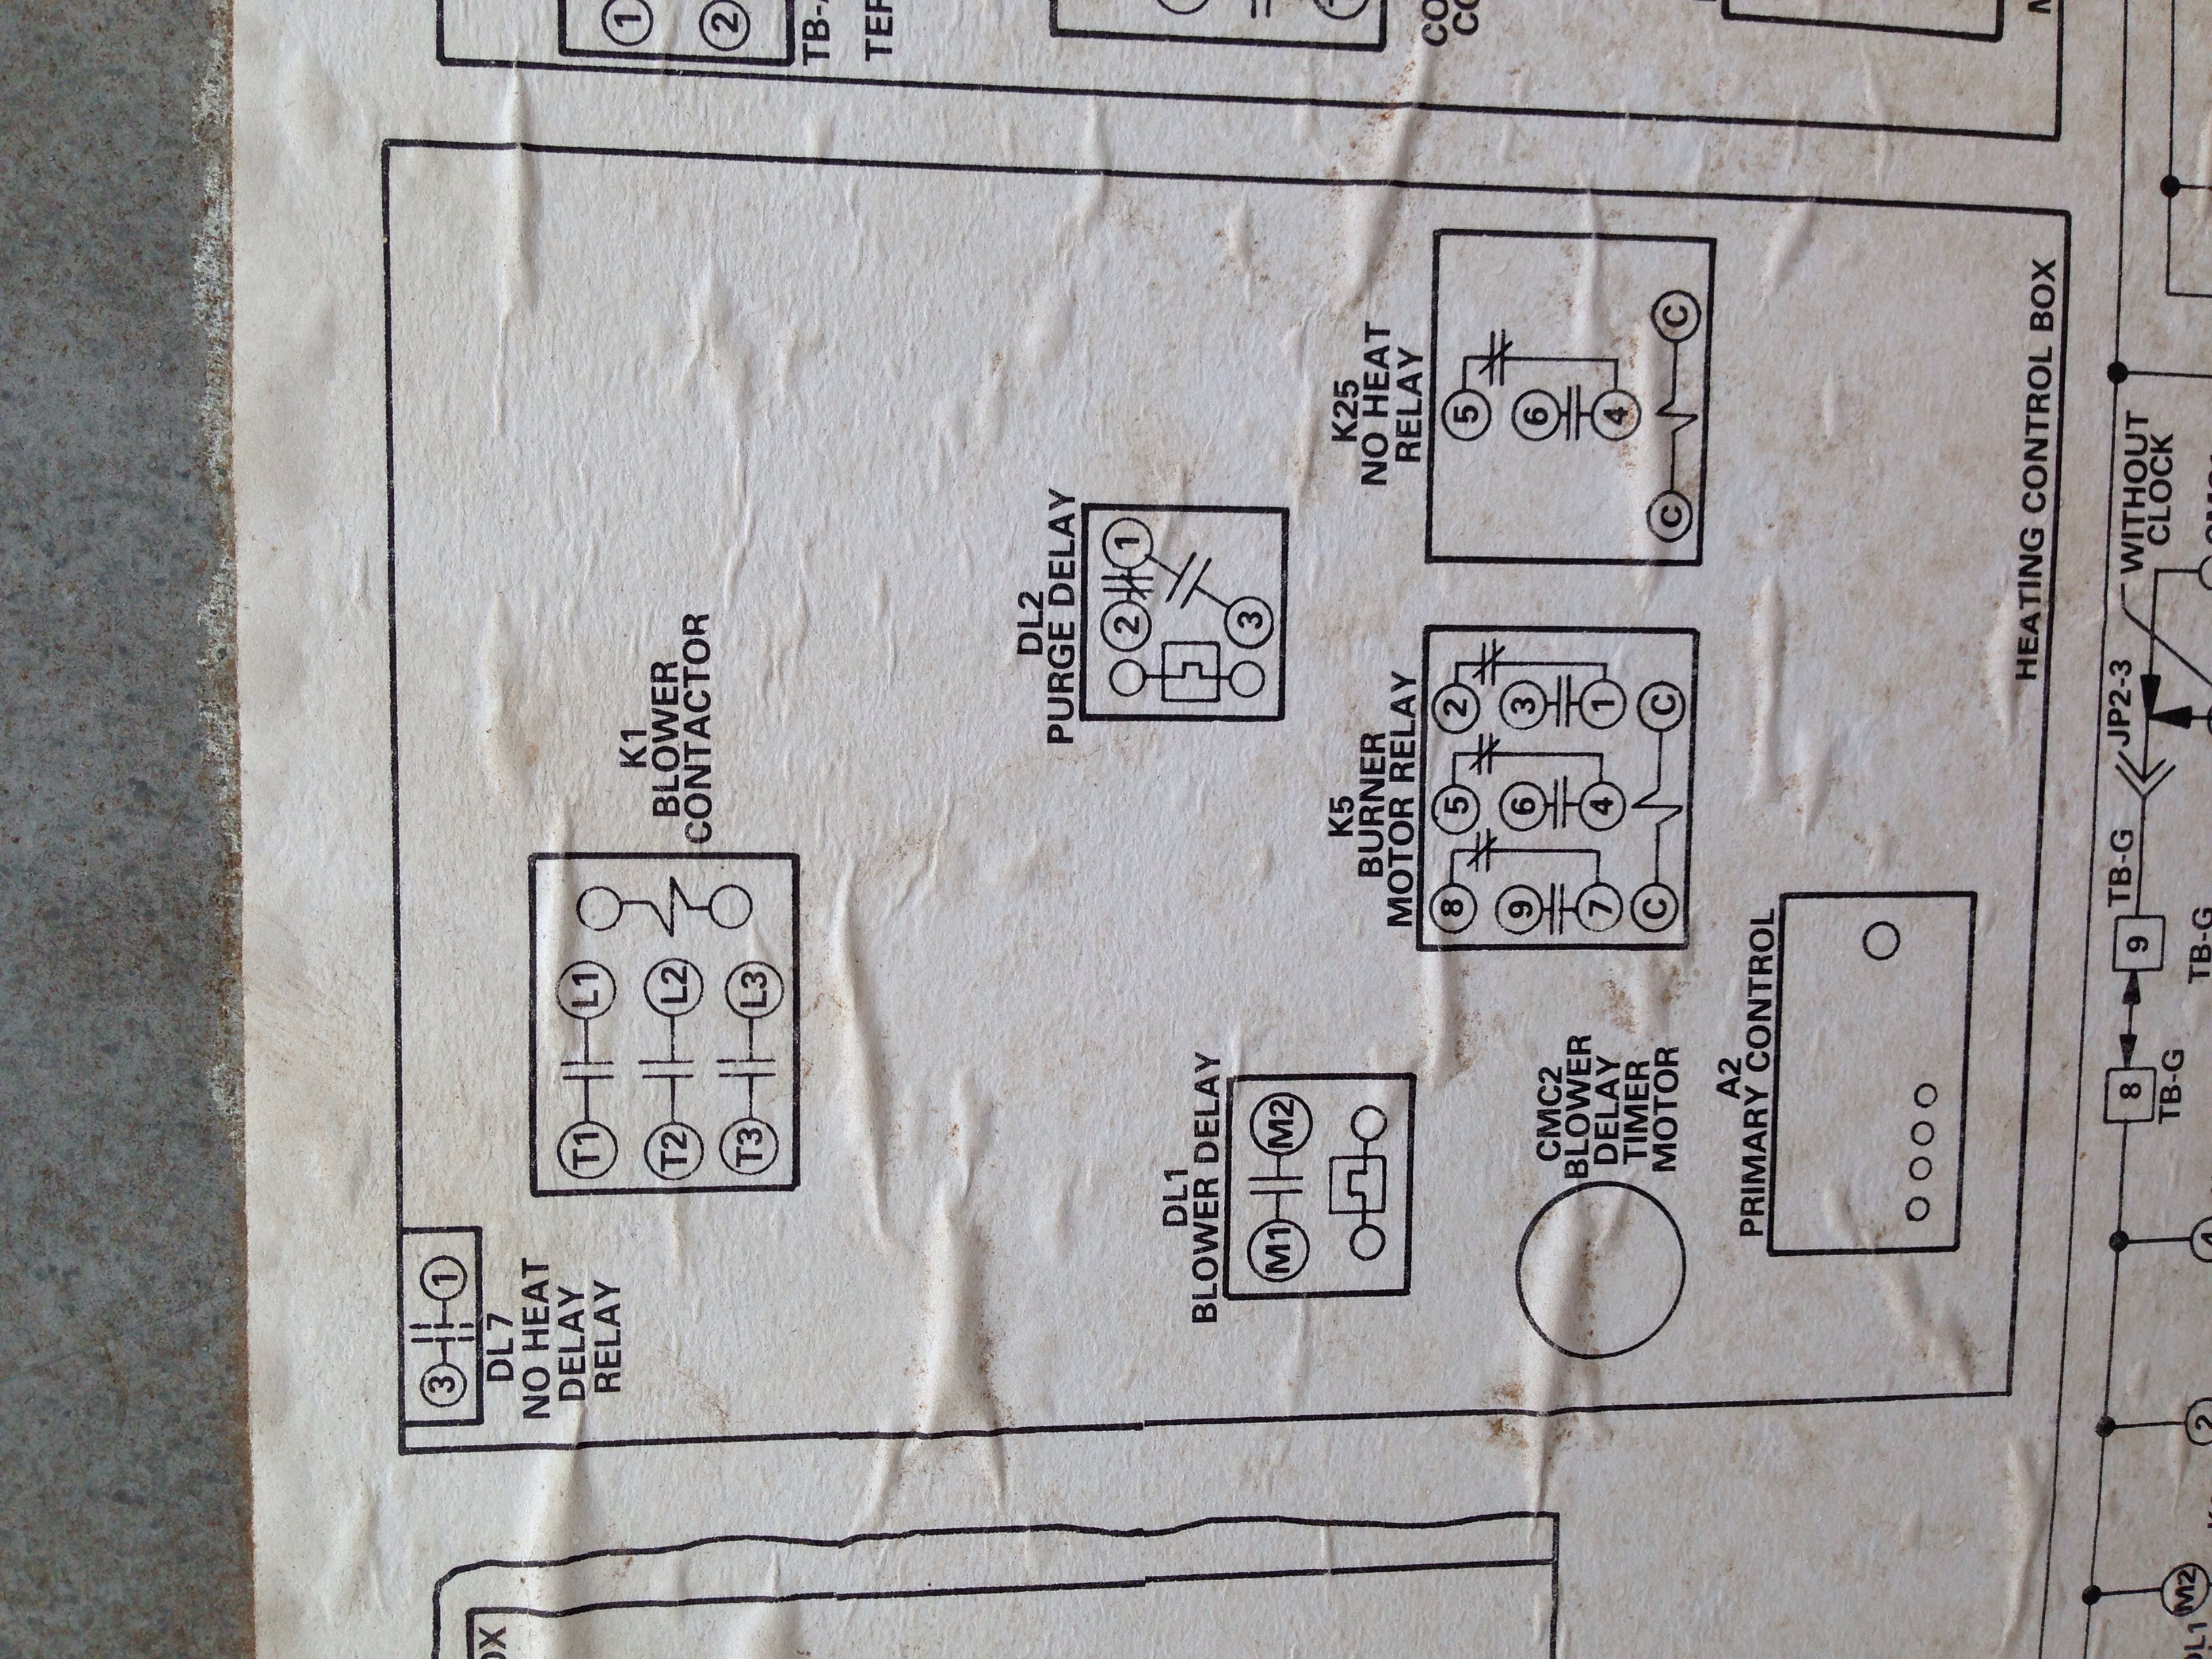 Dorable Lennox Heat Pump Wiring Diagram Picture Collection - Wiring ...